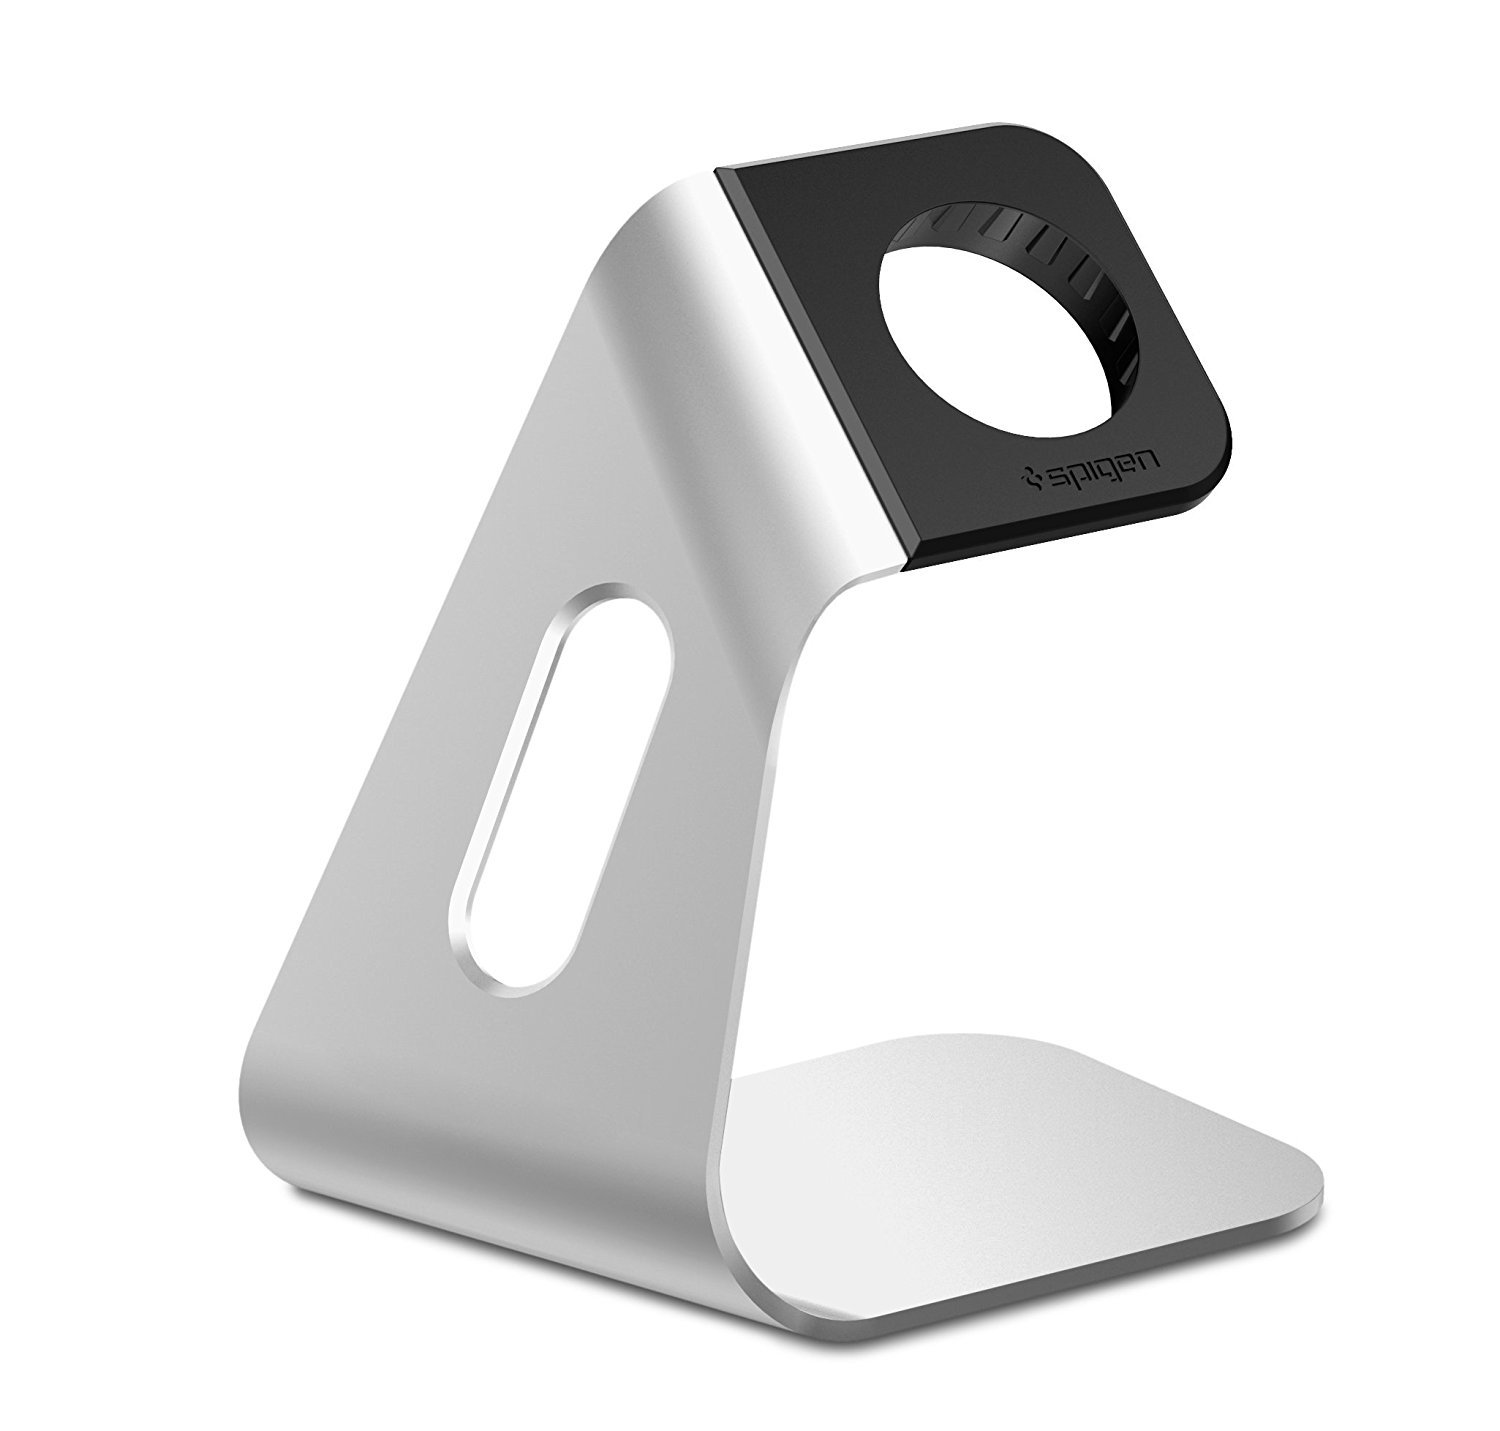 Spigen S330 Apple Watch Stand with Aluminum Body for Apple Watch Series 1 / Series 2 / 42mm / 38mm